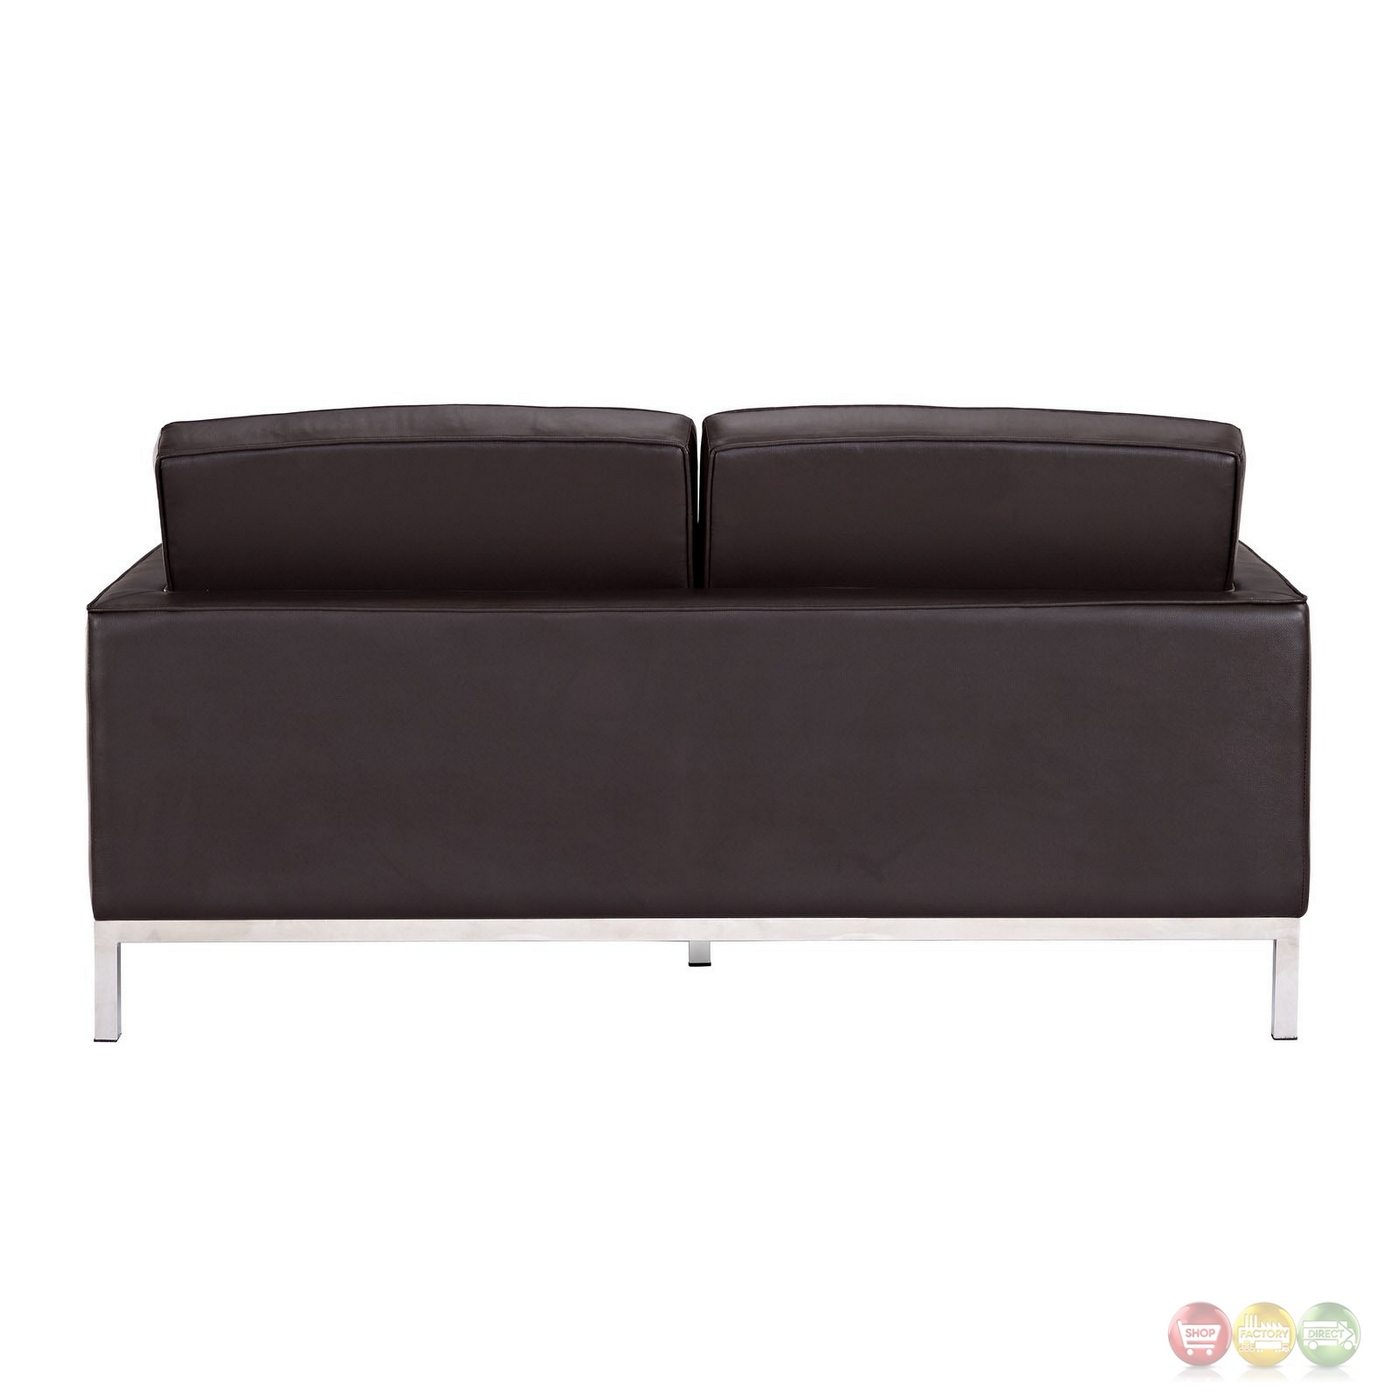 Loft Modern Button Tufted Leather Loveseat With Steel Frame Brown